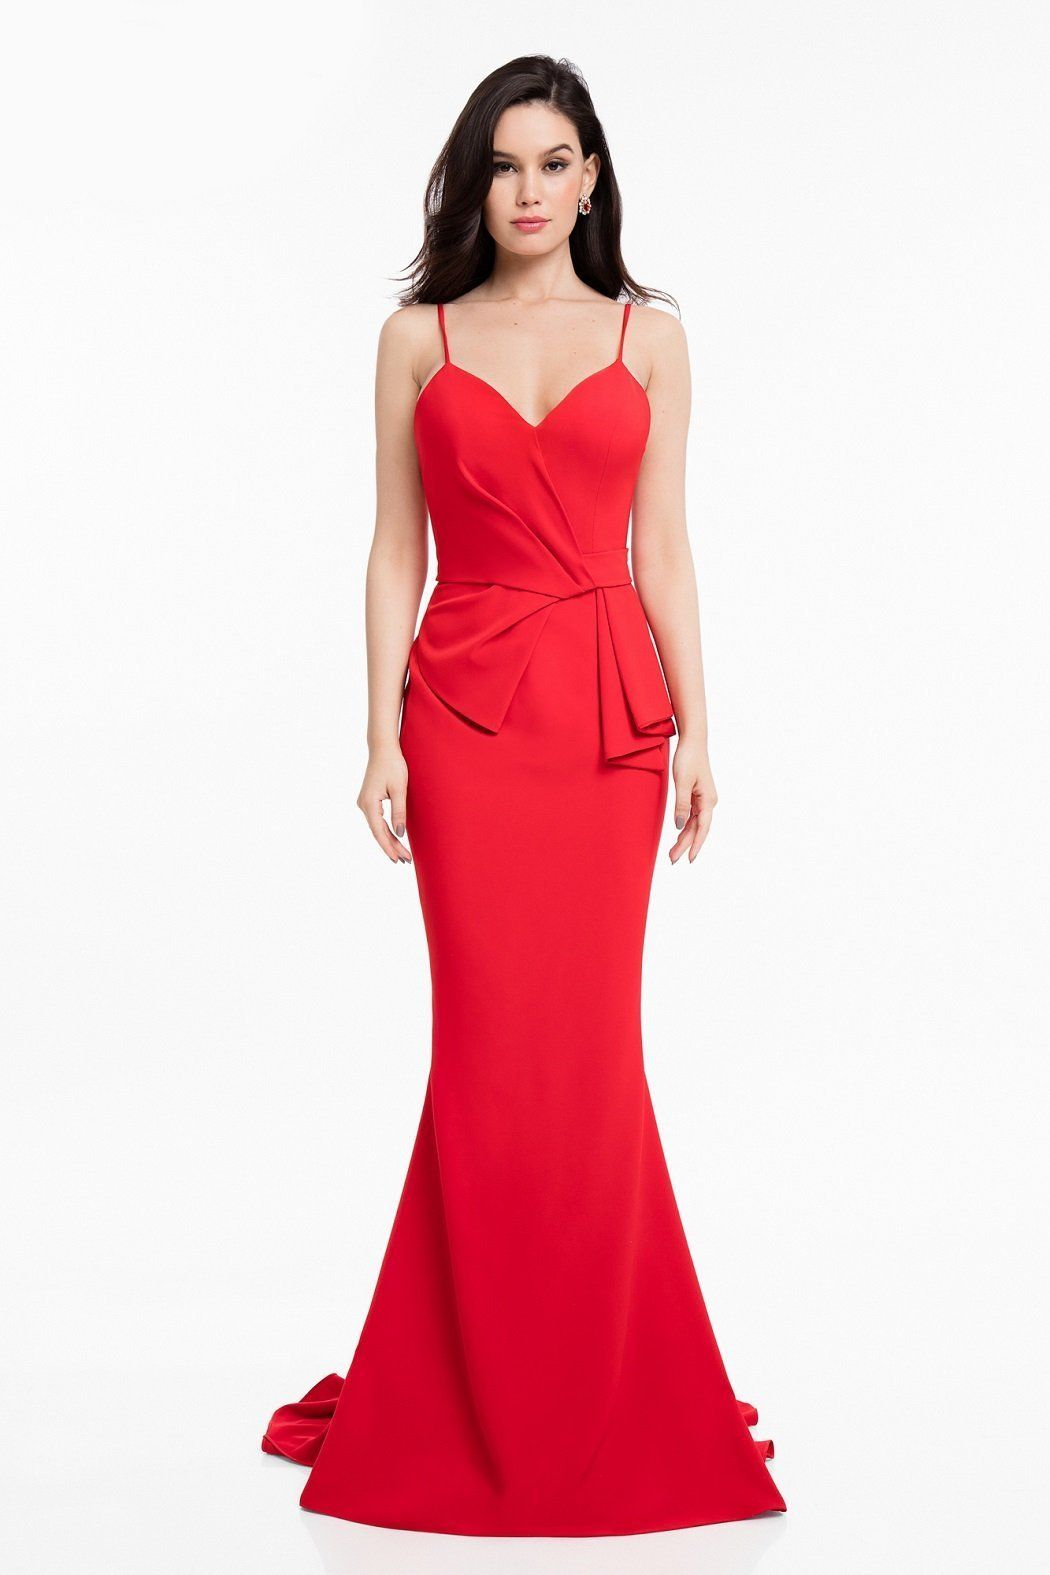 Terani couture gathered detail evening gown in products